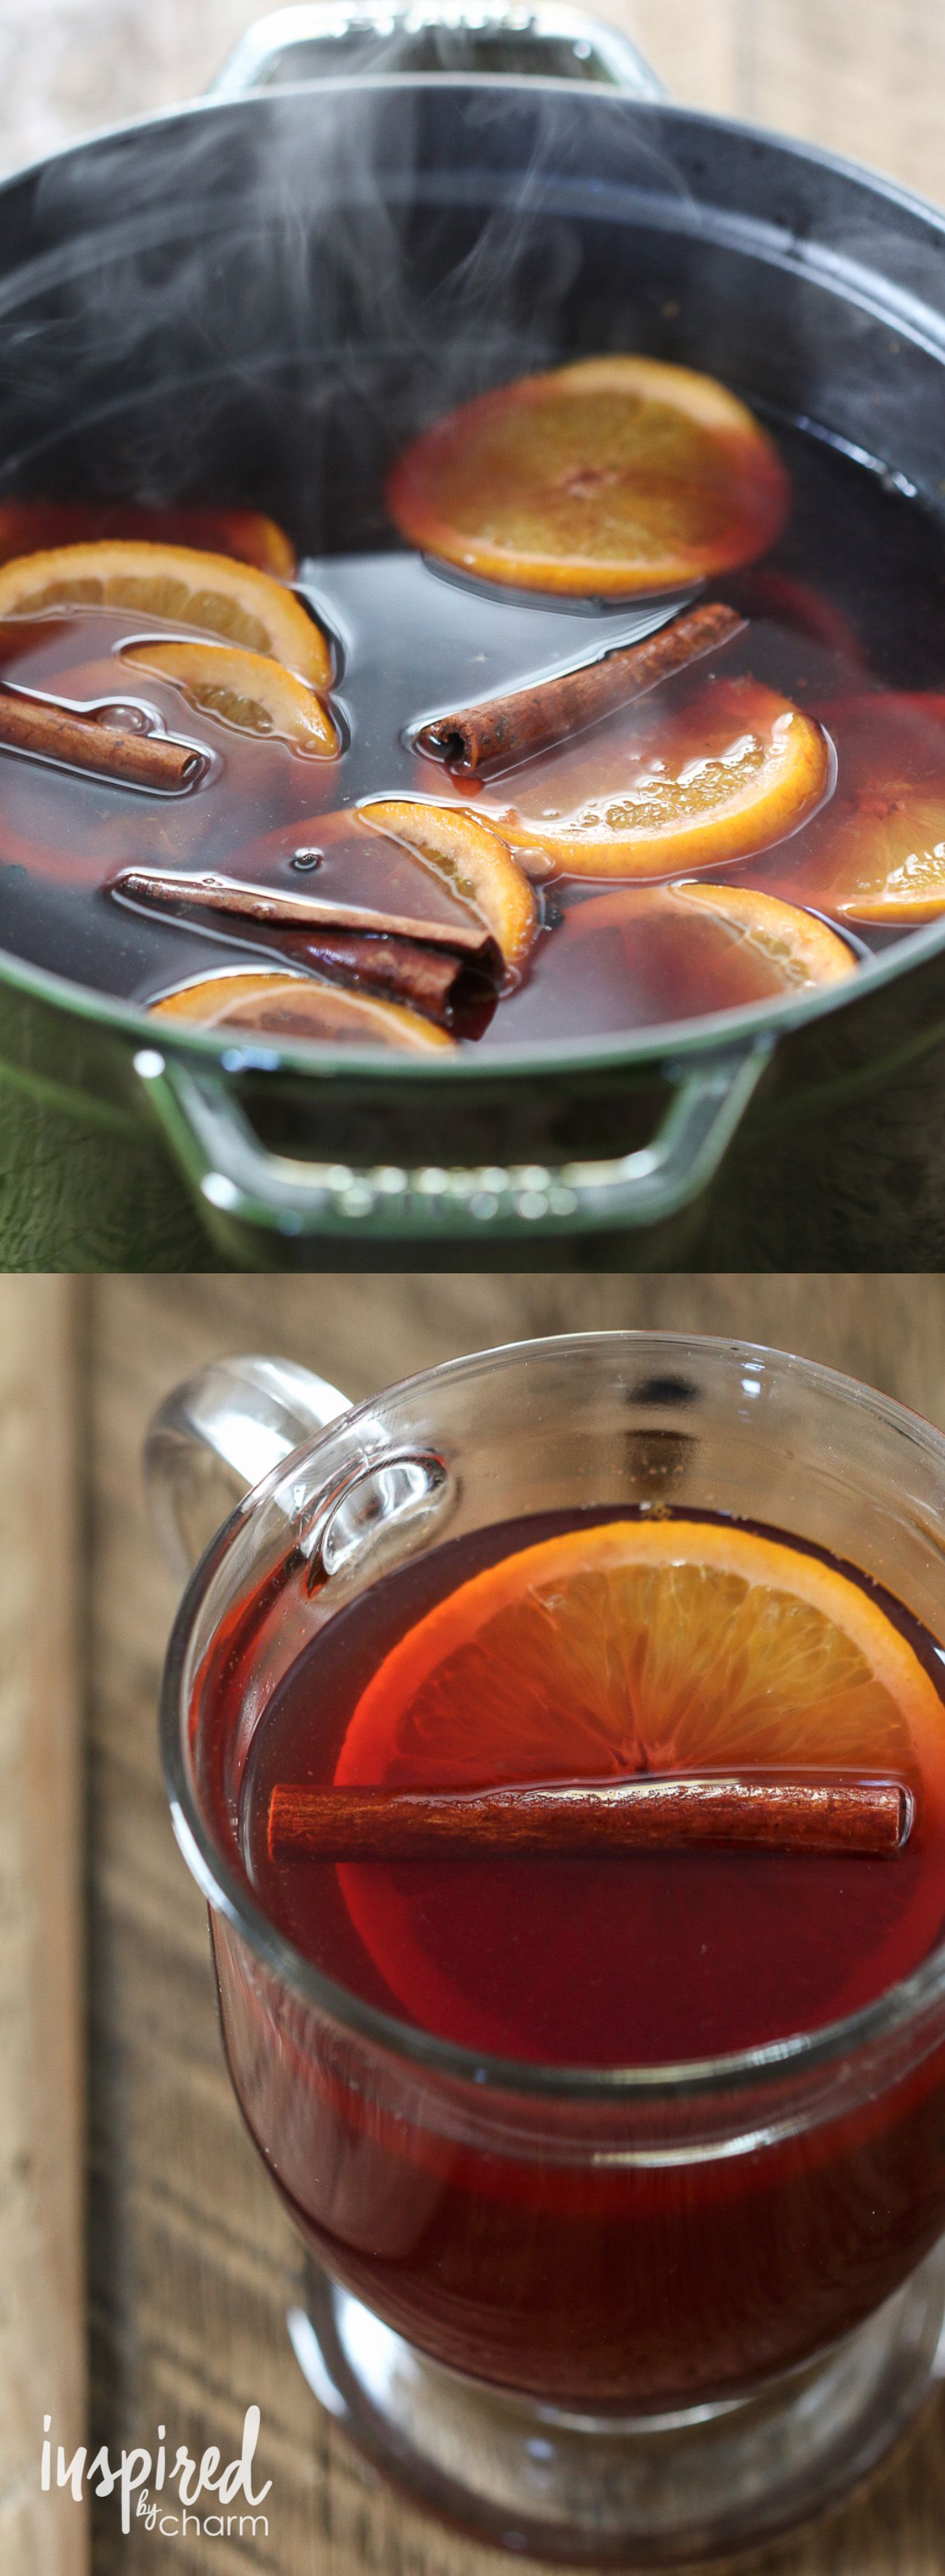 Mulled Wine Recipe Inspiredbycharm Com Fall Cocktail Wine Mulled Wine Recipe Best Mulled Wine Recipe Mulled Wine Recipe Easy